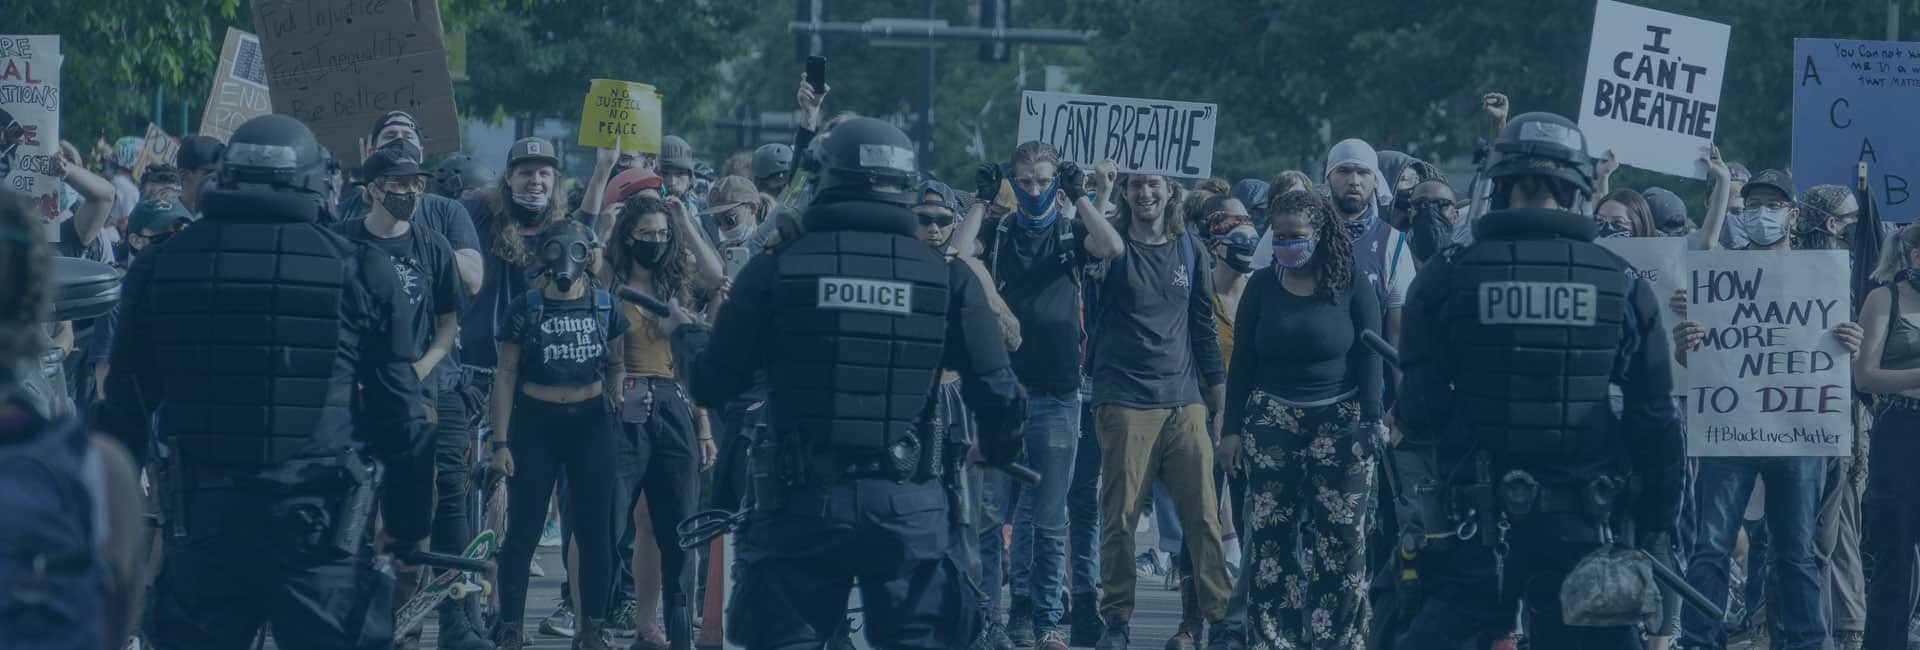 Ongoing Protests Shine Spotlight on Cities' Police Complaint Handling Systems